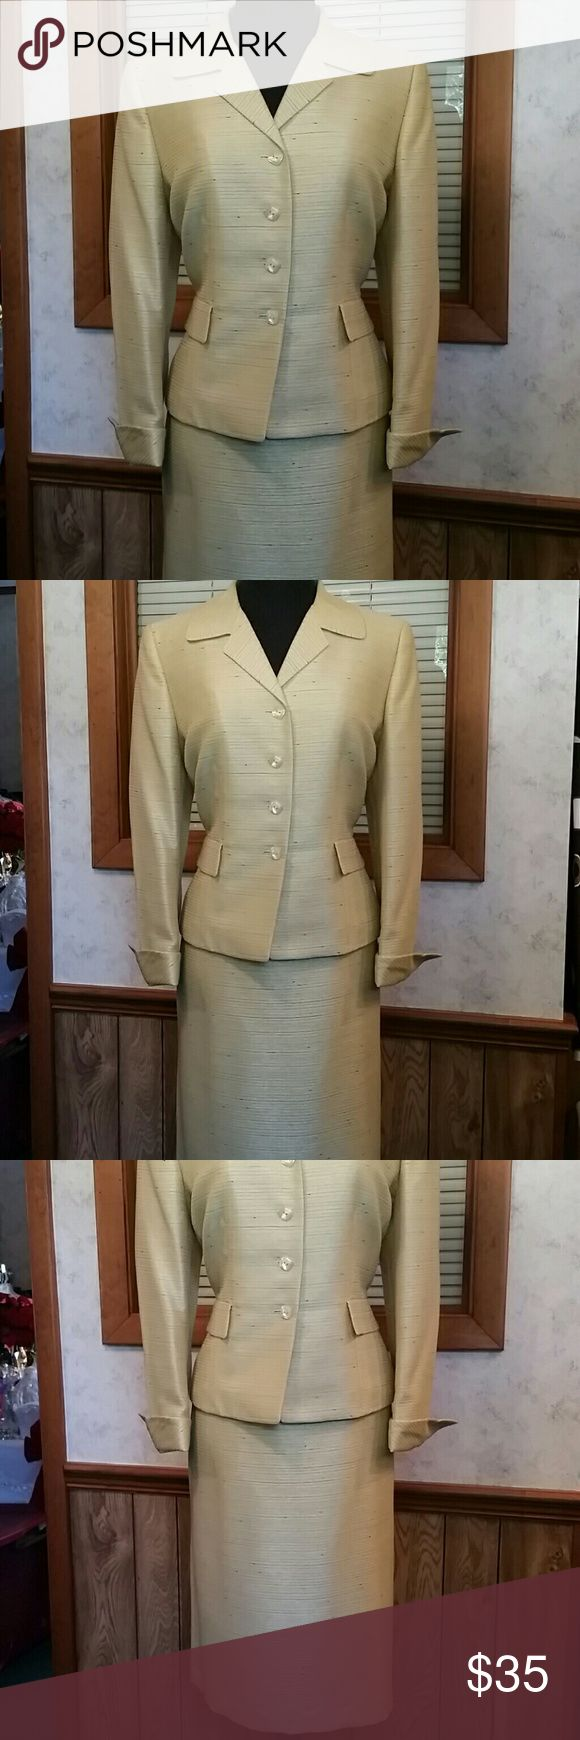 Beautiful Golden yellow skirt suit Size 14 Beautiful women's skirt suit. Resale item but in excellent condition.. no flaws or defects. Lesuit Skirts Skirt Sets